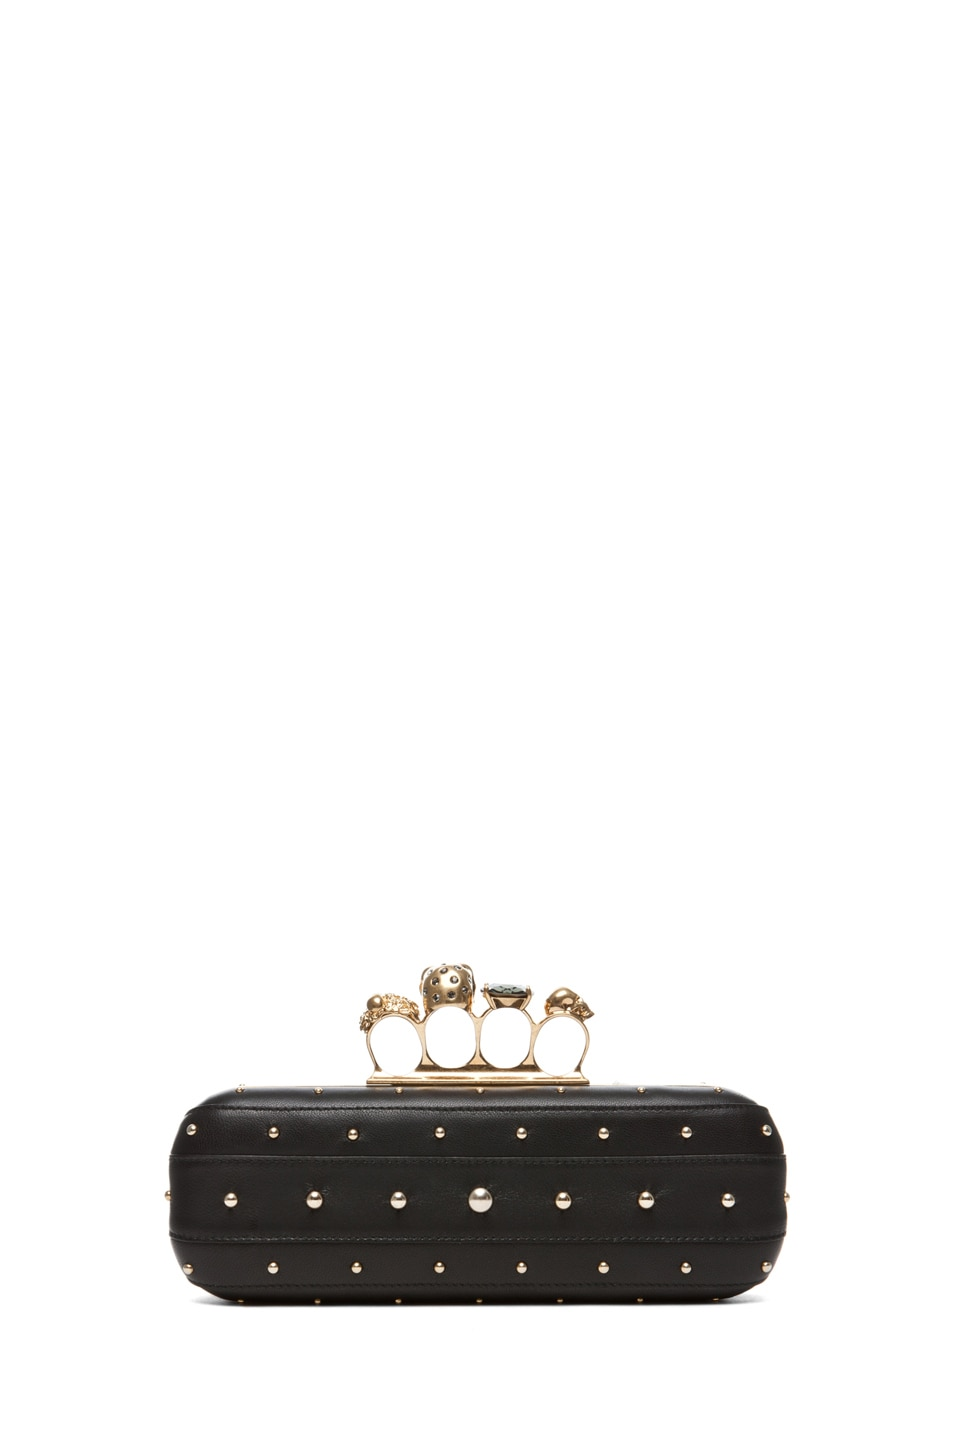 Image 2 of Alexander McQueen Knuckle Box Long Clutch in Black